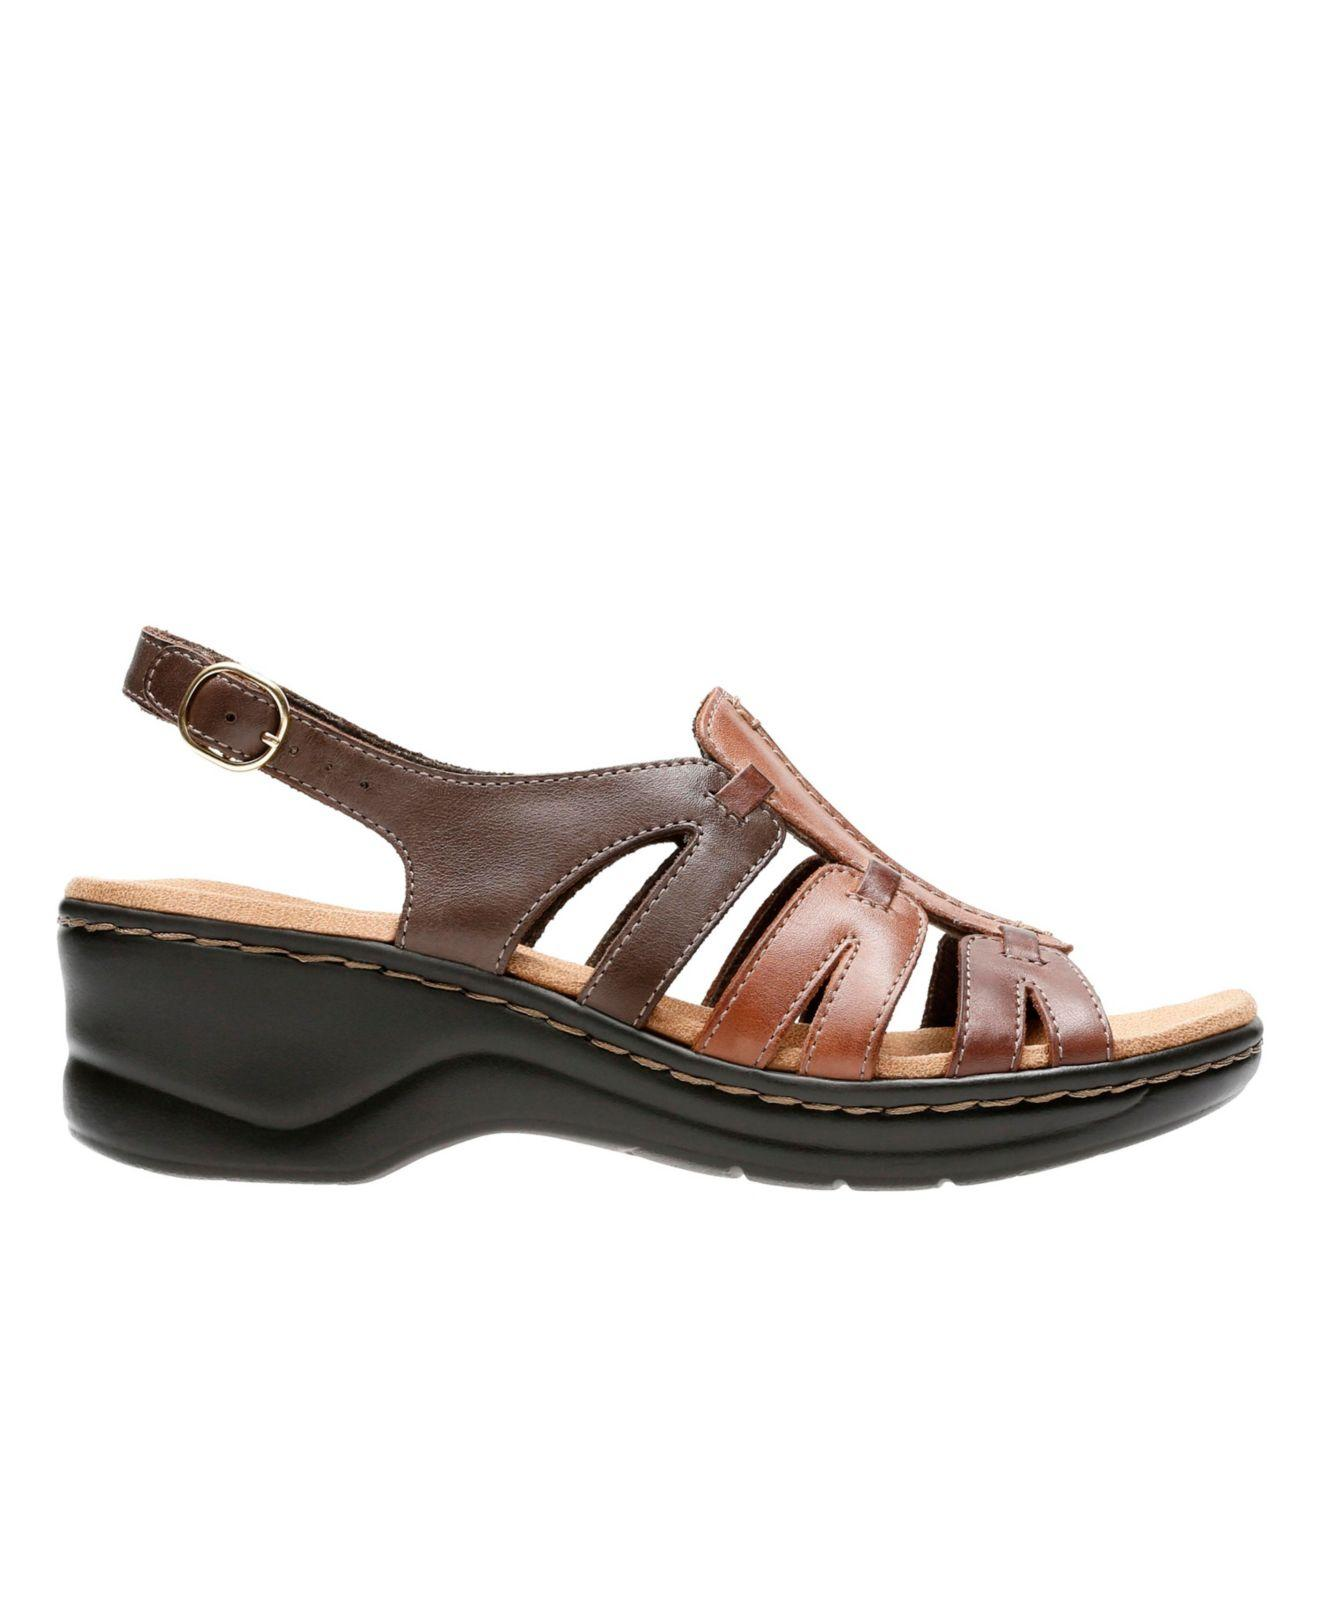 Clarks Leather Lexi Marigold Q Sandals In Brown Lyst